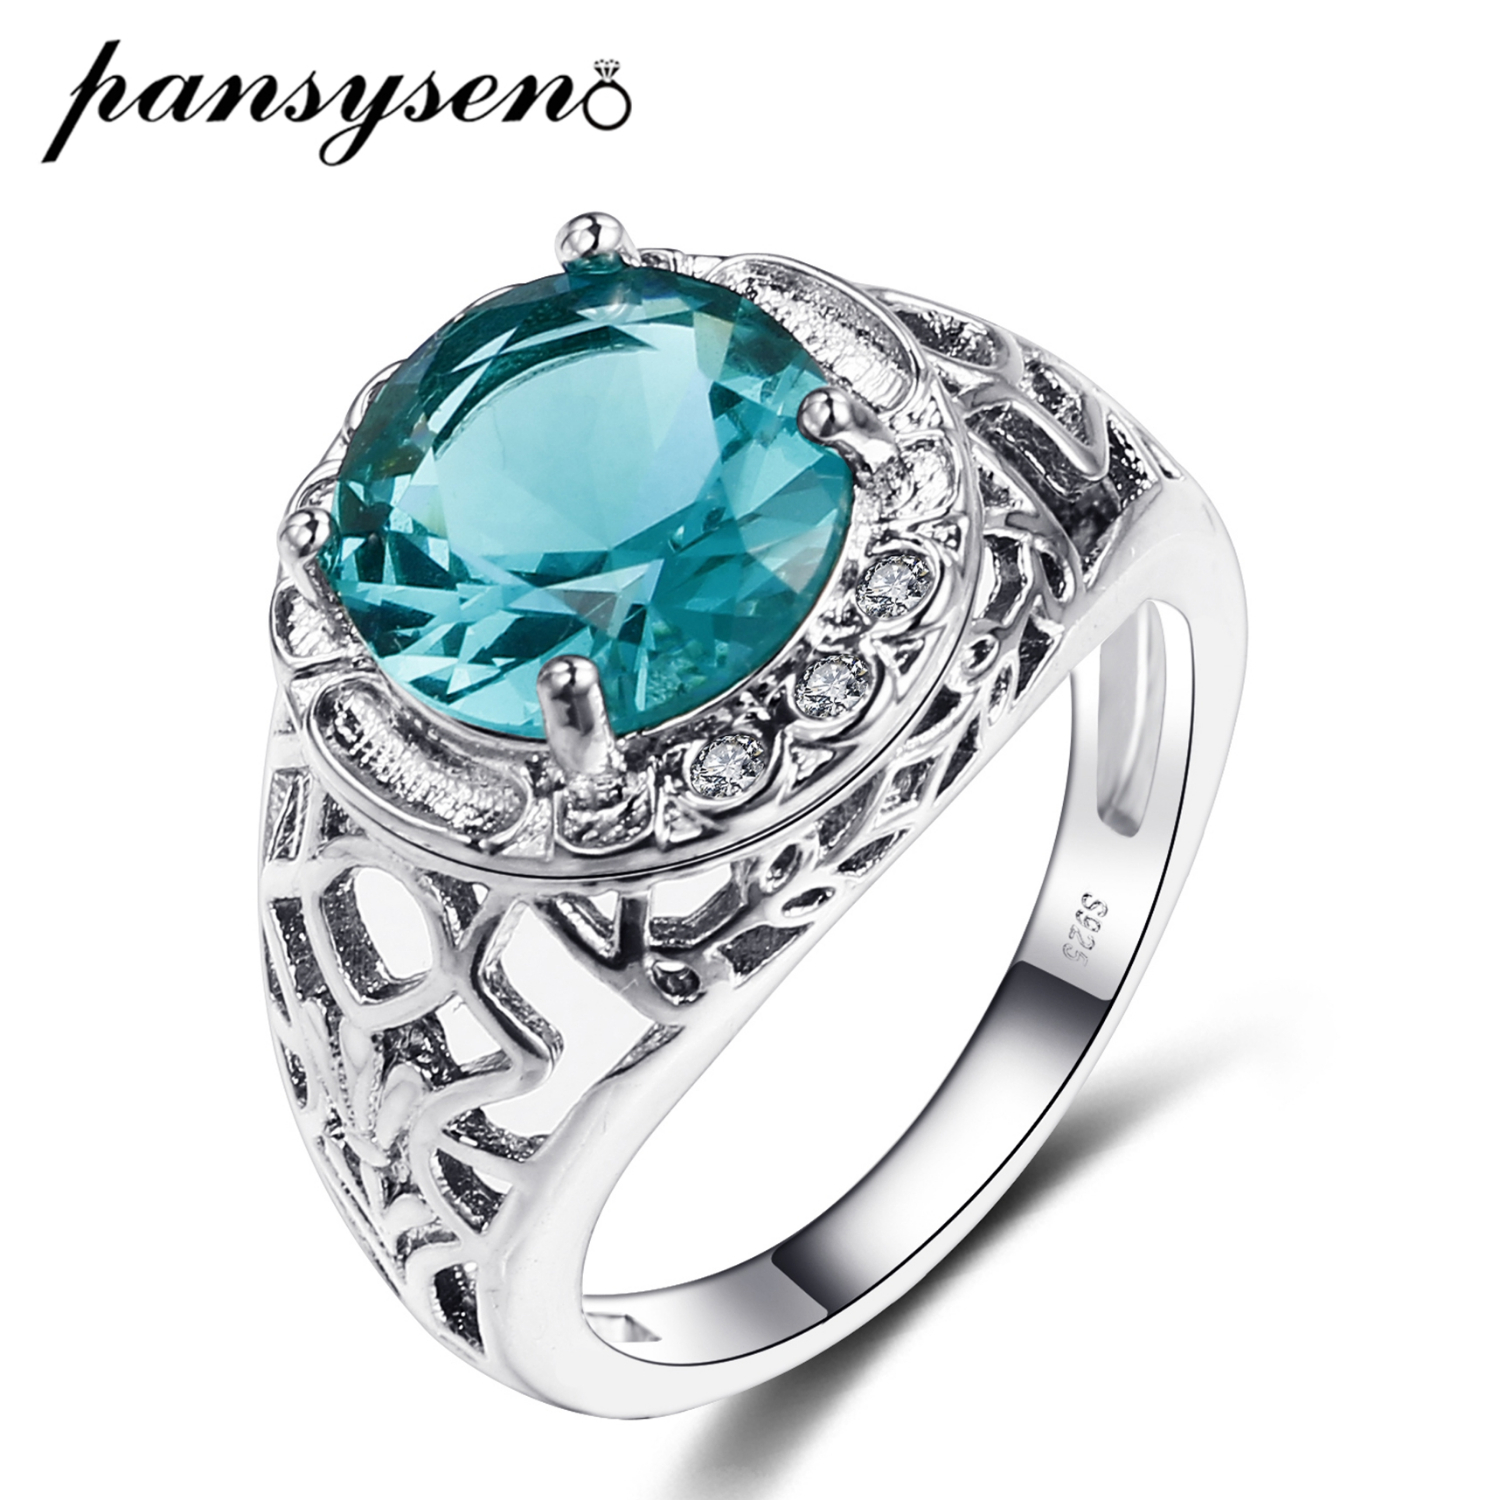 PANSYSEN Classic 100% 925 Sterling Silver Blue Green Gemstone Wedding Engagement Ring Anniversary Fine Jewelry Gift Size 6-10